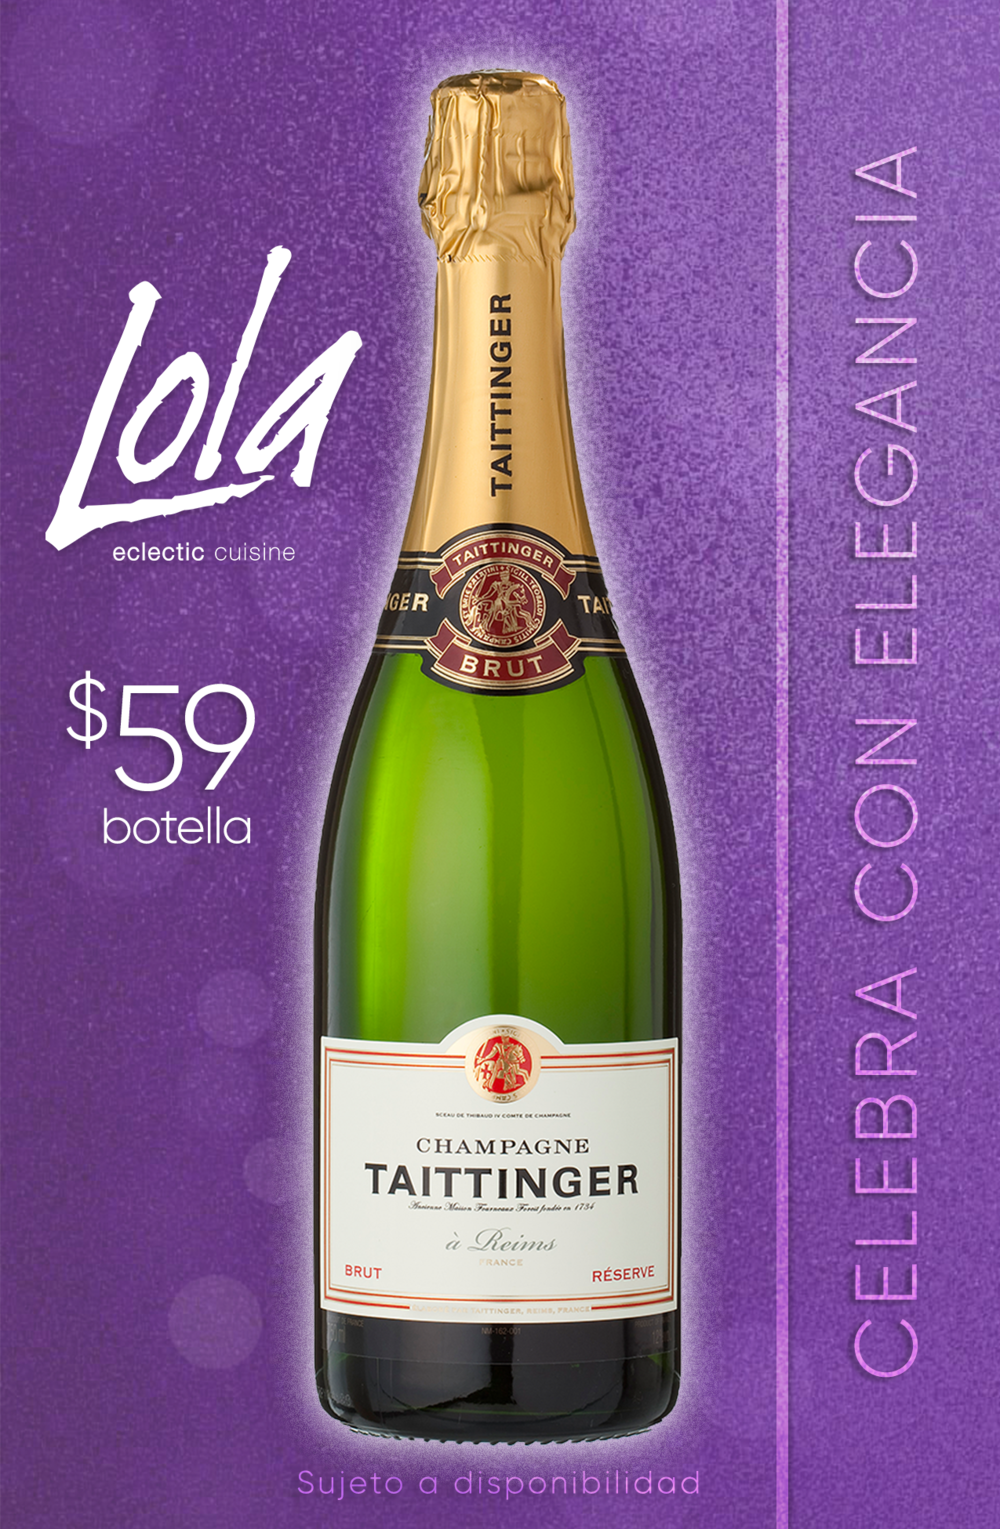 tattinger tabletent.png